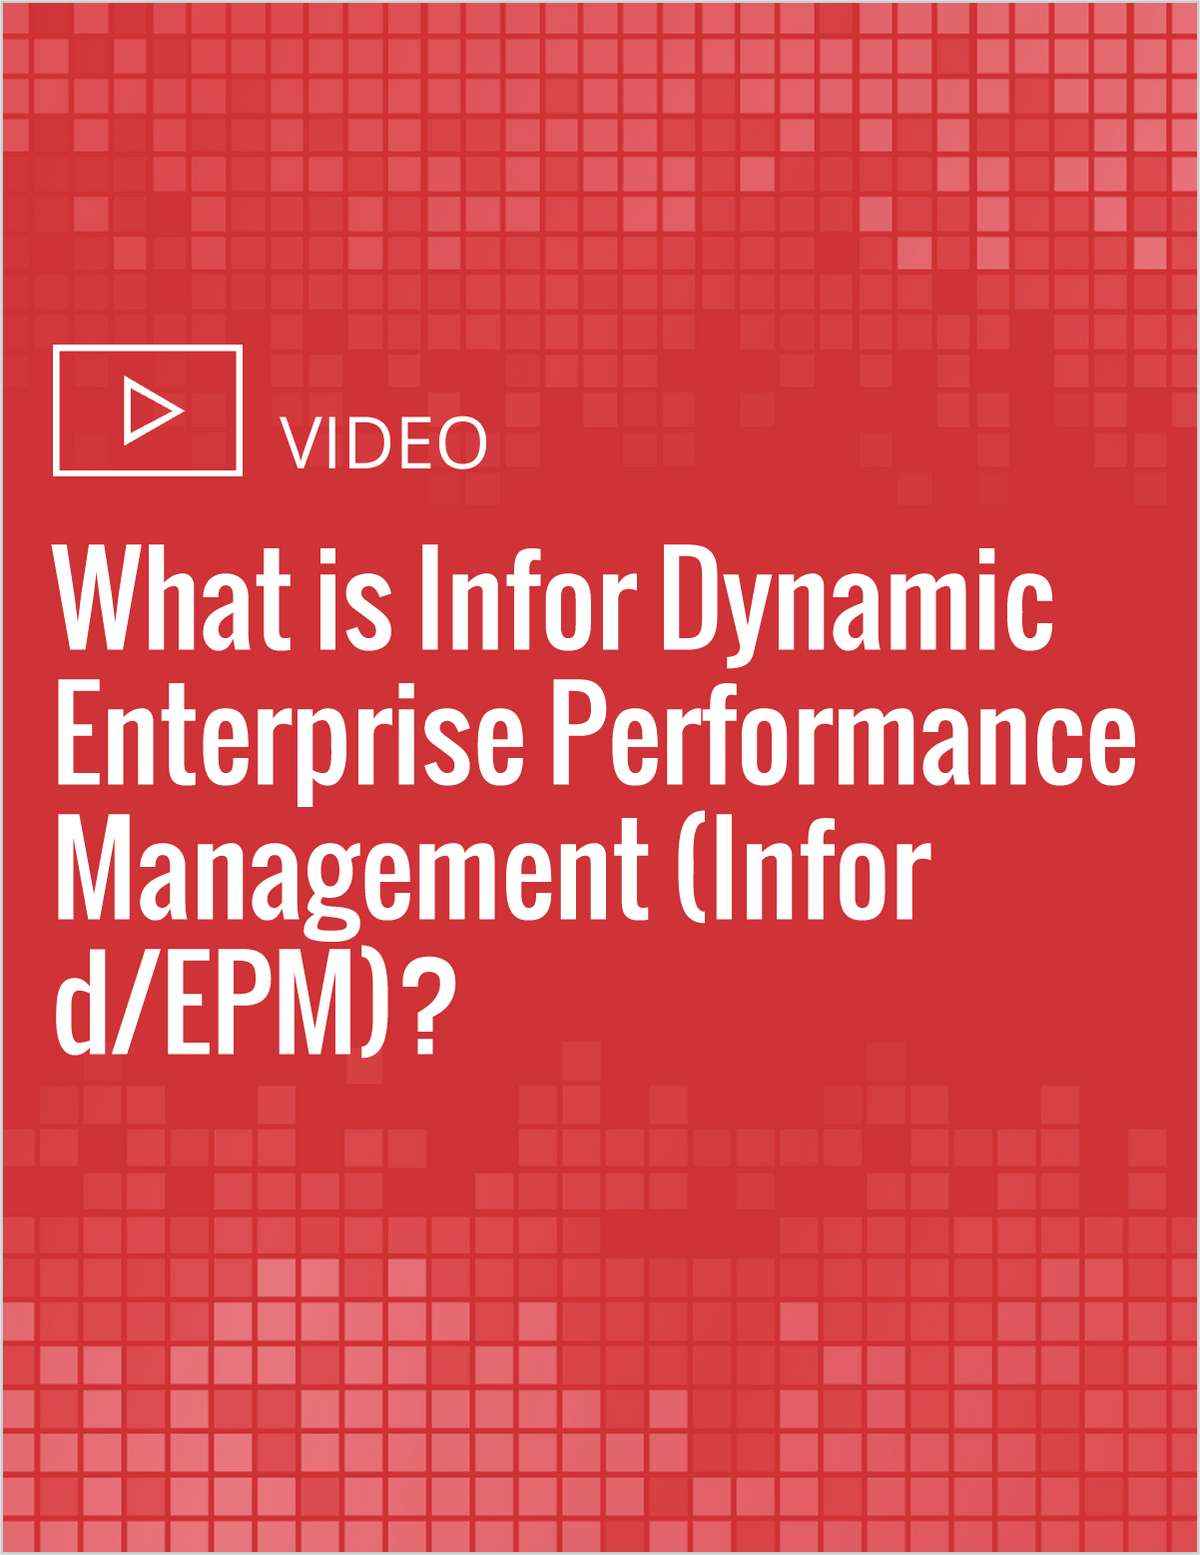 What is Infor Dynamic Enterprise Performance Management (Infor d/EPM)?